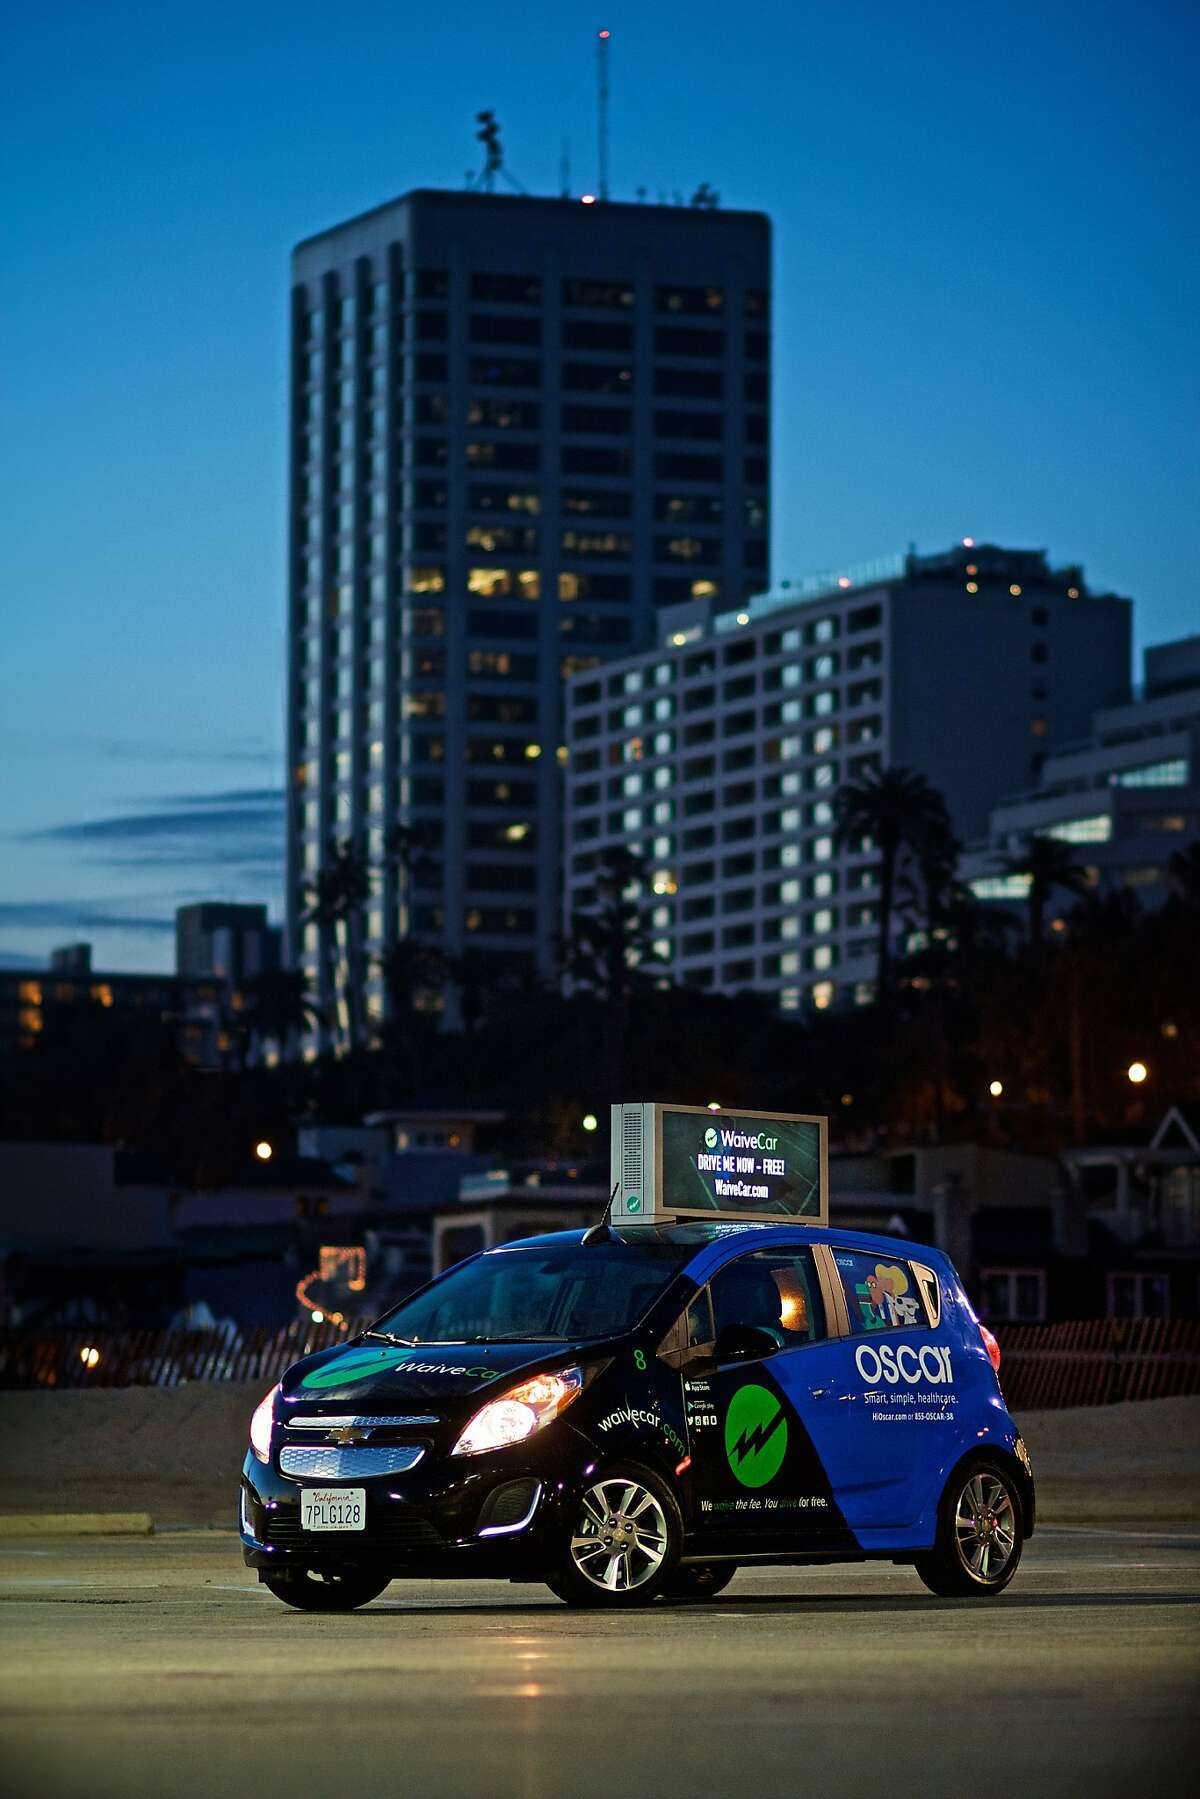 Santa Monica's WaiveCar plans to offer free car rentals to Los Angeles drivers for Uber, Lyft, DoorDash and other services, subsidized by ads wrapped around the car and on rooftop digital displays. Regular people can drive the cars for free for two hours, after which they are $6/hour.